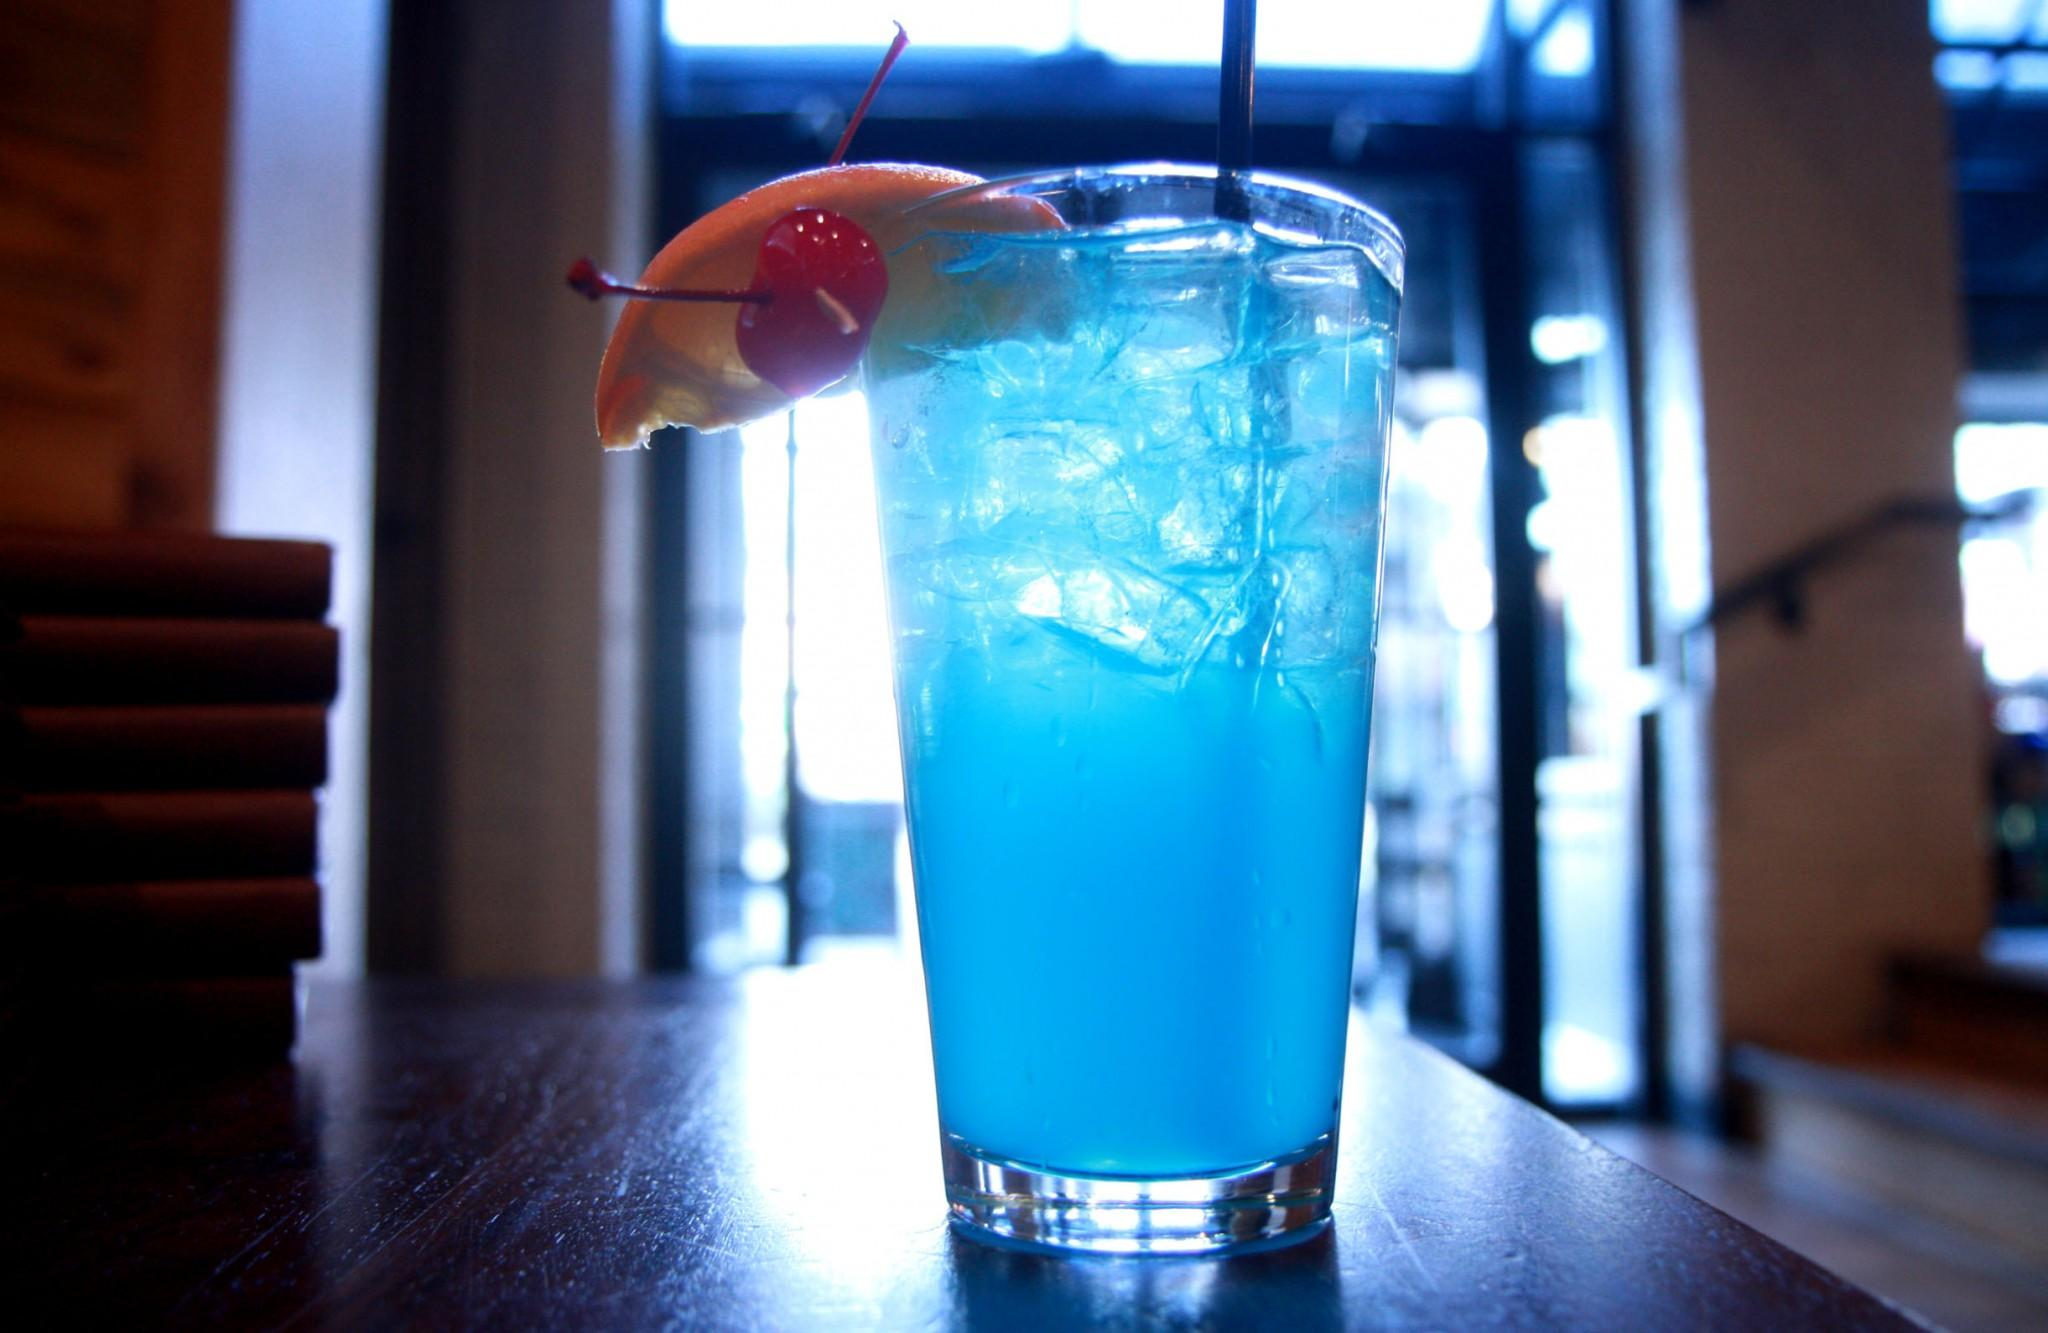 Several bars in downtown Fort Collins, including Yeti Bar and Grill, say one of the most popular drinks of the weekend is Adios MoFo. The drink is a hefty combination of vodka, rum, tequila, gin, Blue Curacao liqueur, and a sweet soda finish likely to give anyone a strong buzz.